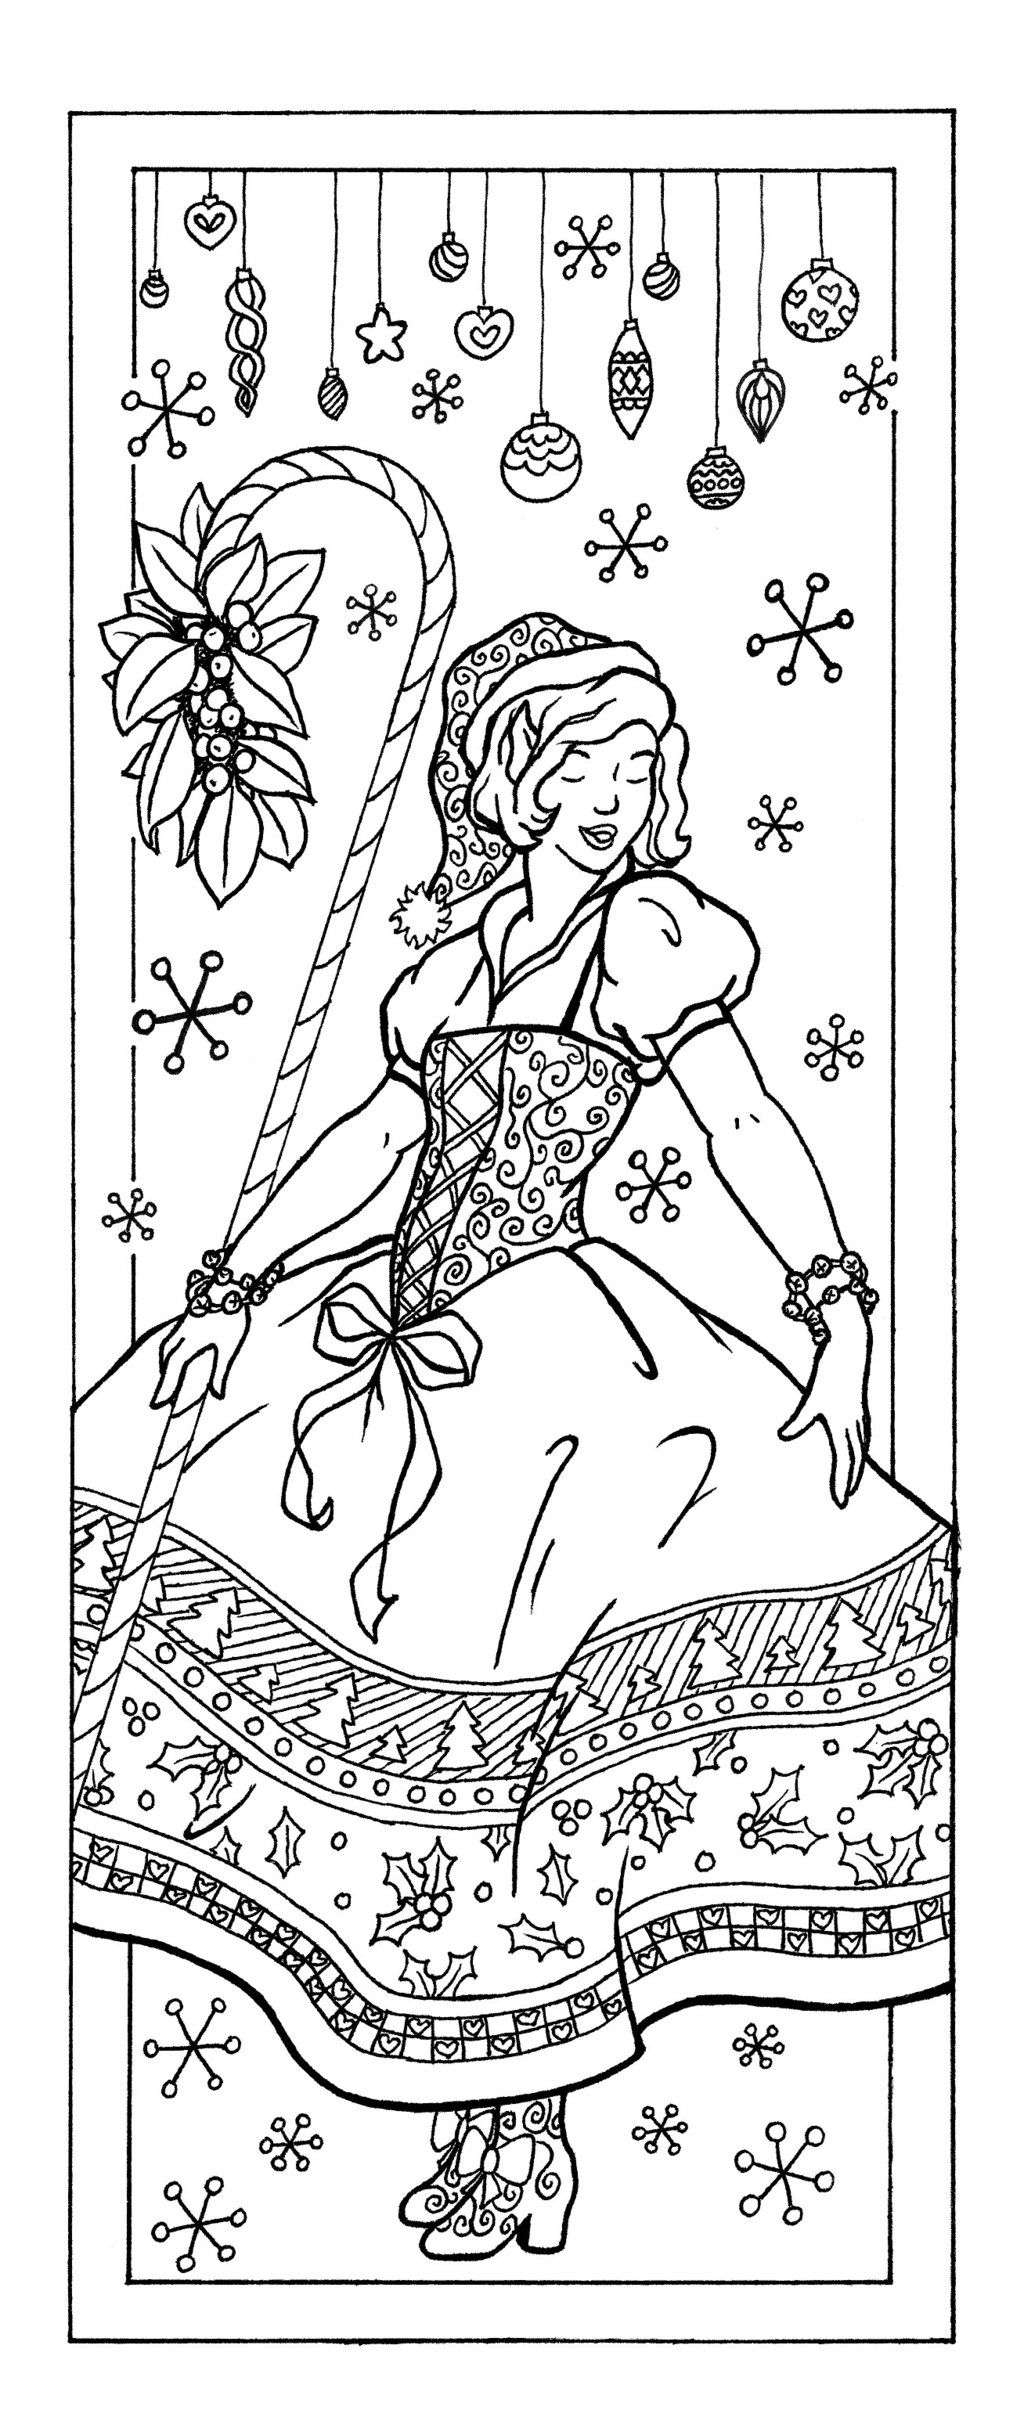 Christmas Elf Coloring Pages For Adults With Page Bookmark Fits One Half Sheet Of Paper